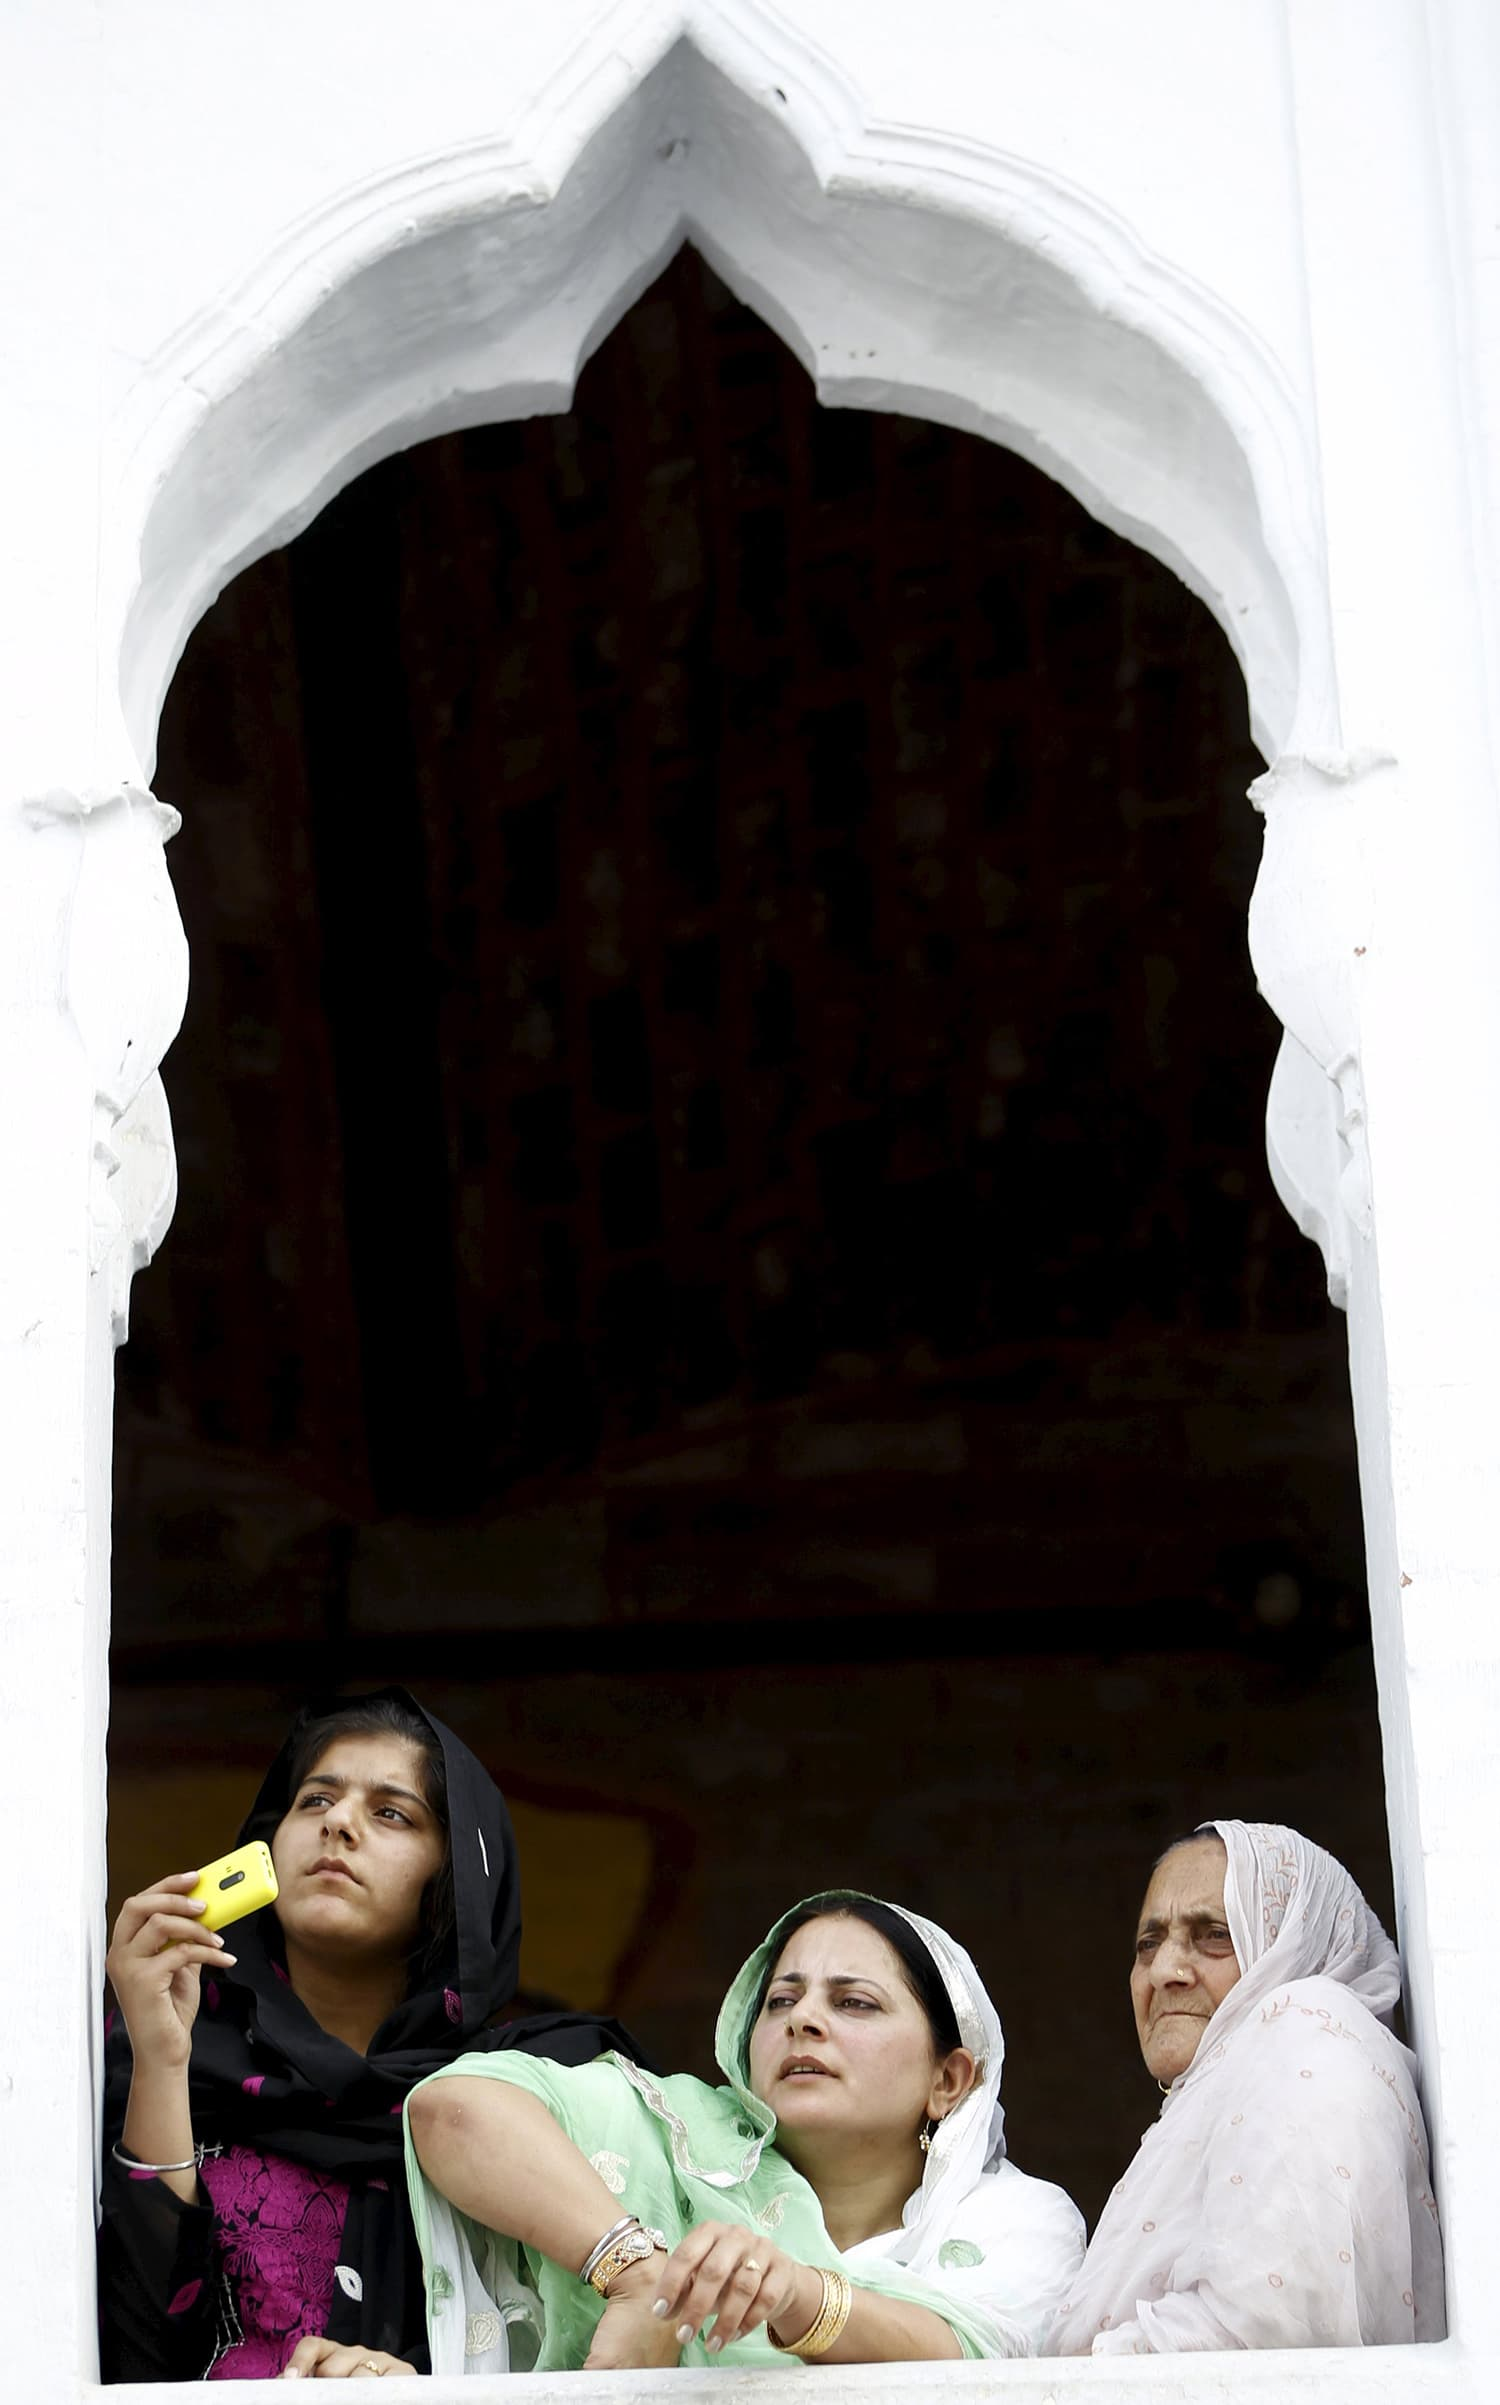 Sikh devotees watch the Baisakhi festival at Panja Sahib shrine in Hassan Abdal.—Reuters